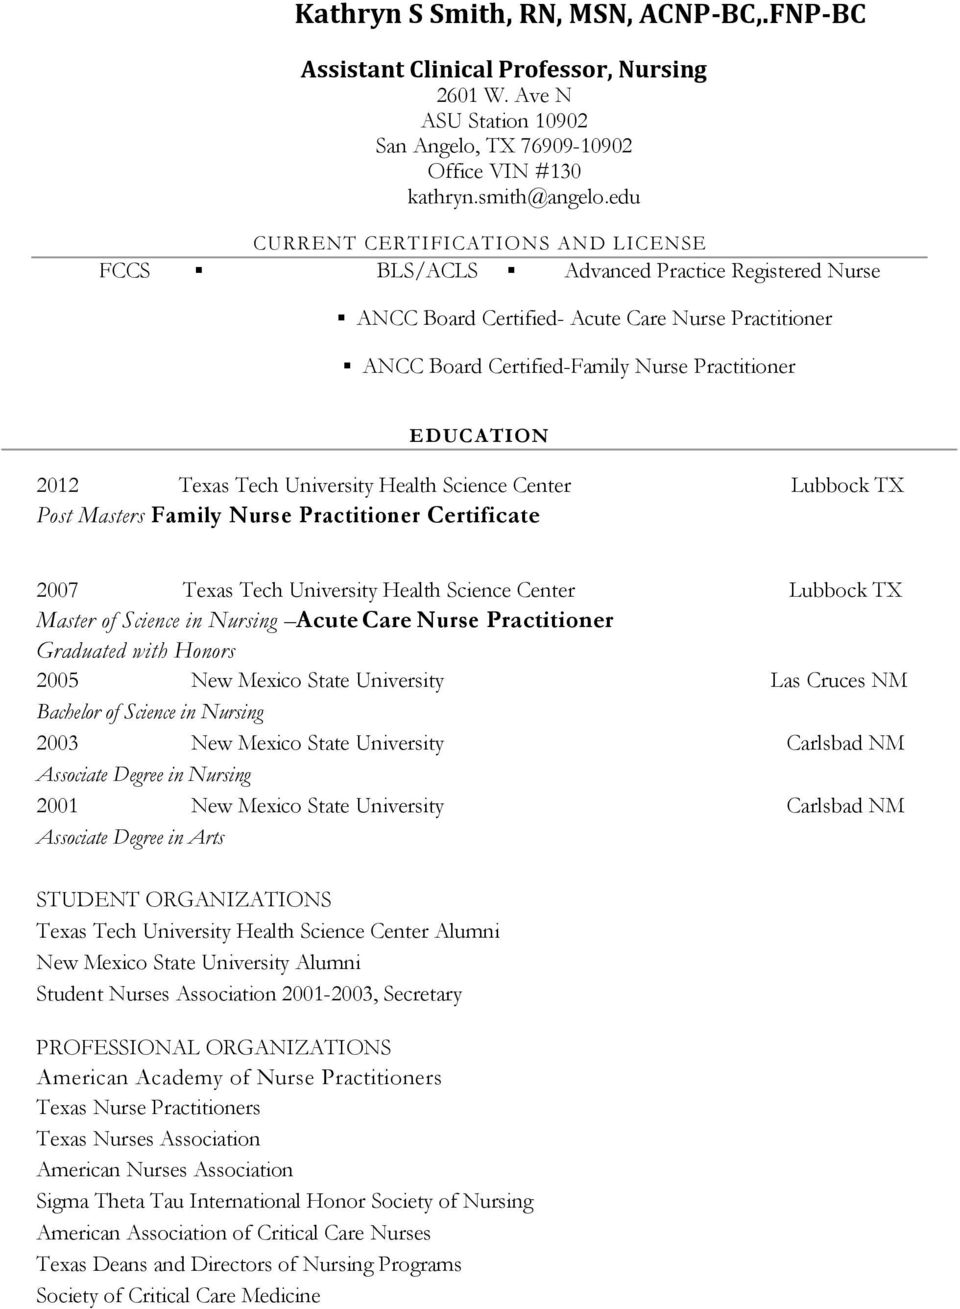 Practitioner E D U C A T I O N 2012 Texas Tech University Health Science Center Lubbock TX Post Masters Family Nurse Practitioner Certificate 2007 Texas Tech University Health Science Center Lubbock